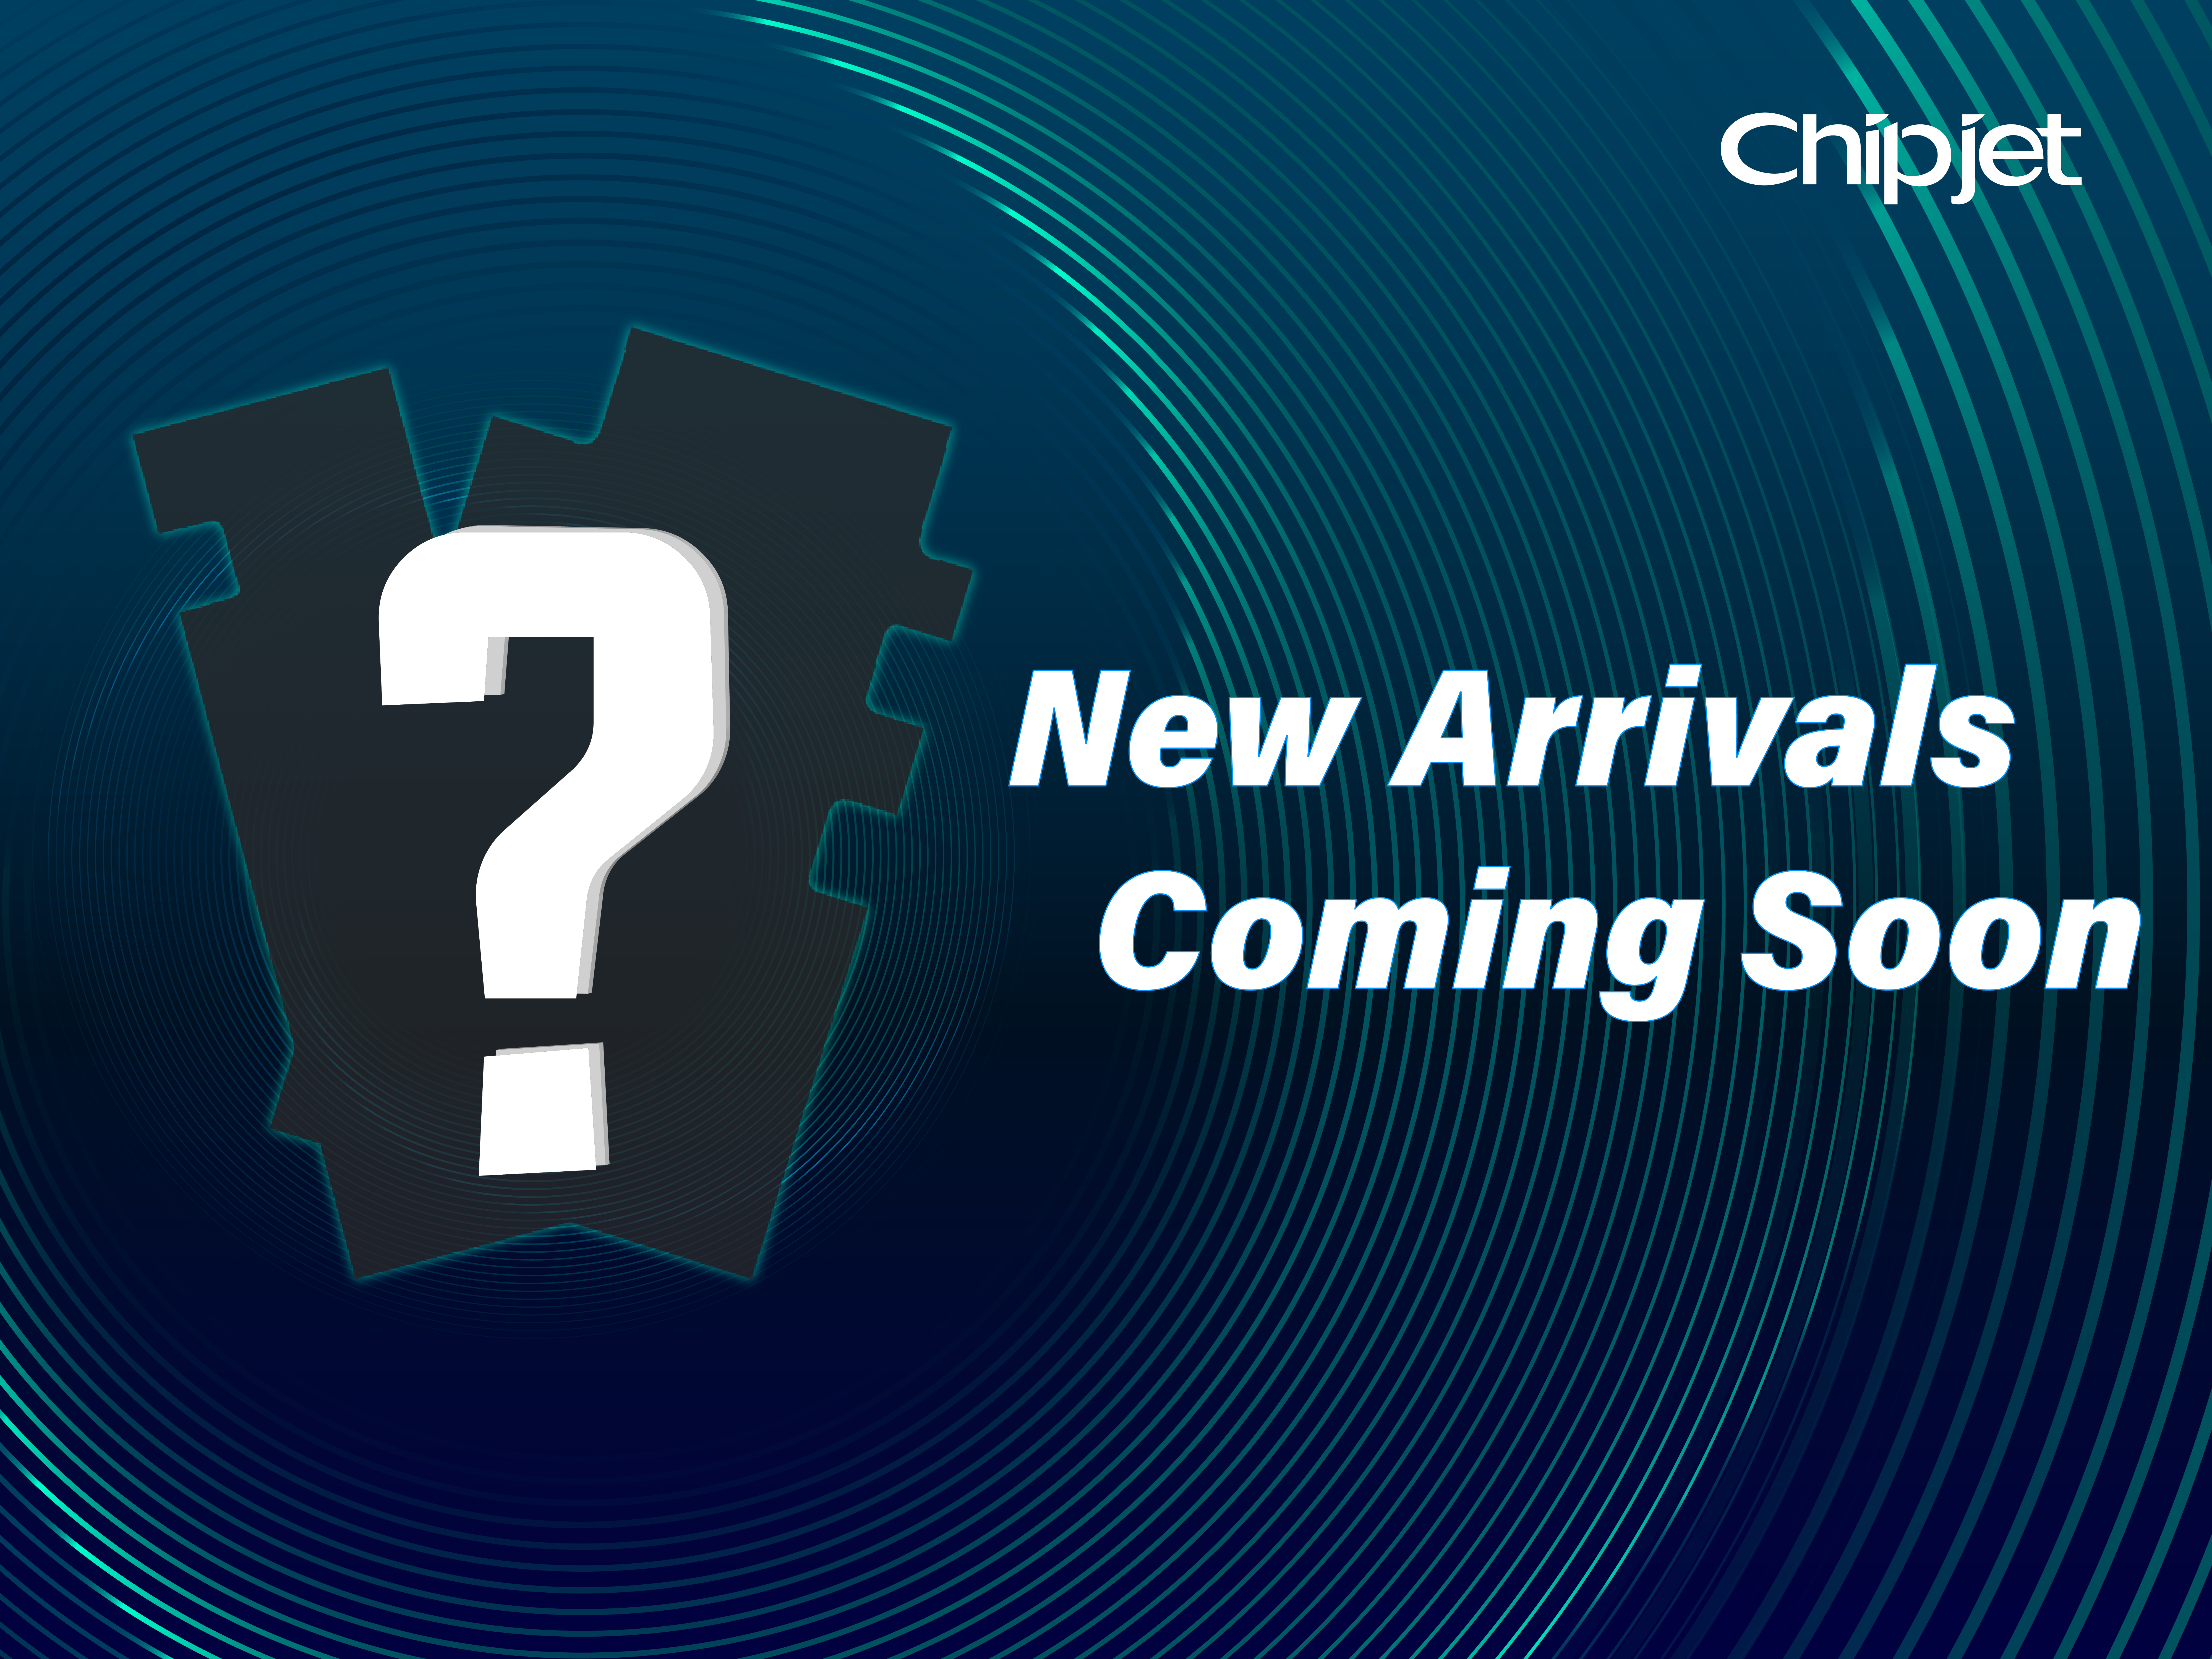 Chipjet Rolls Out New Products? Click Here For Exclusive Clues!